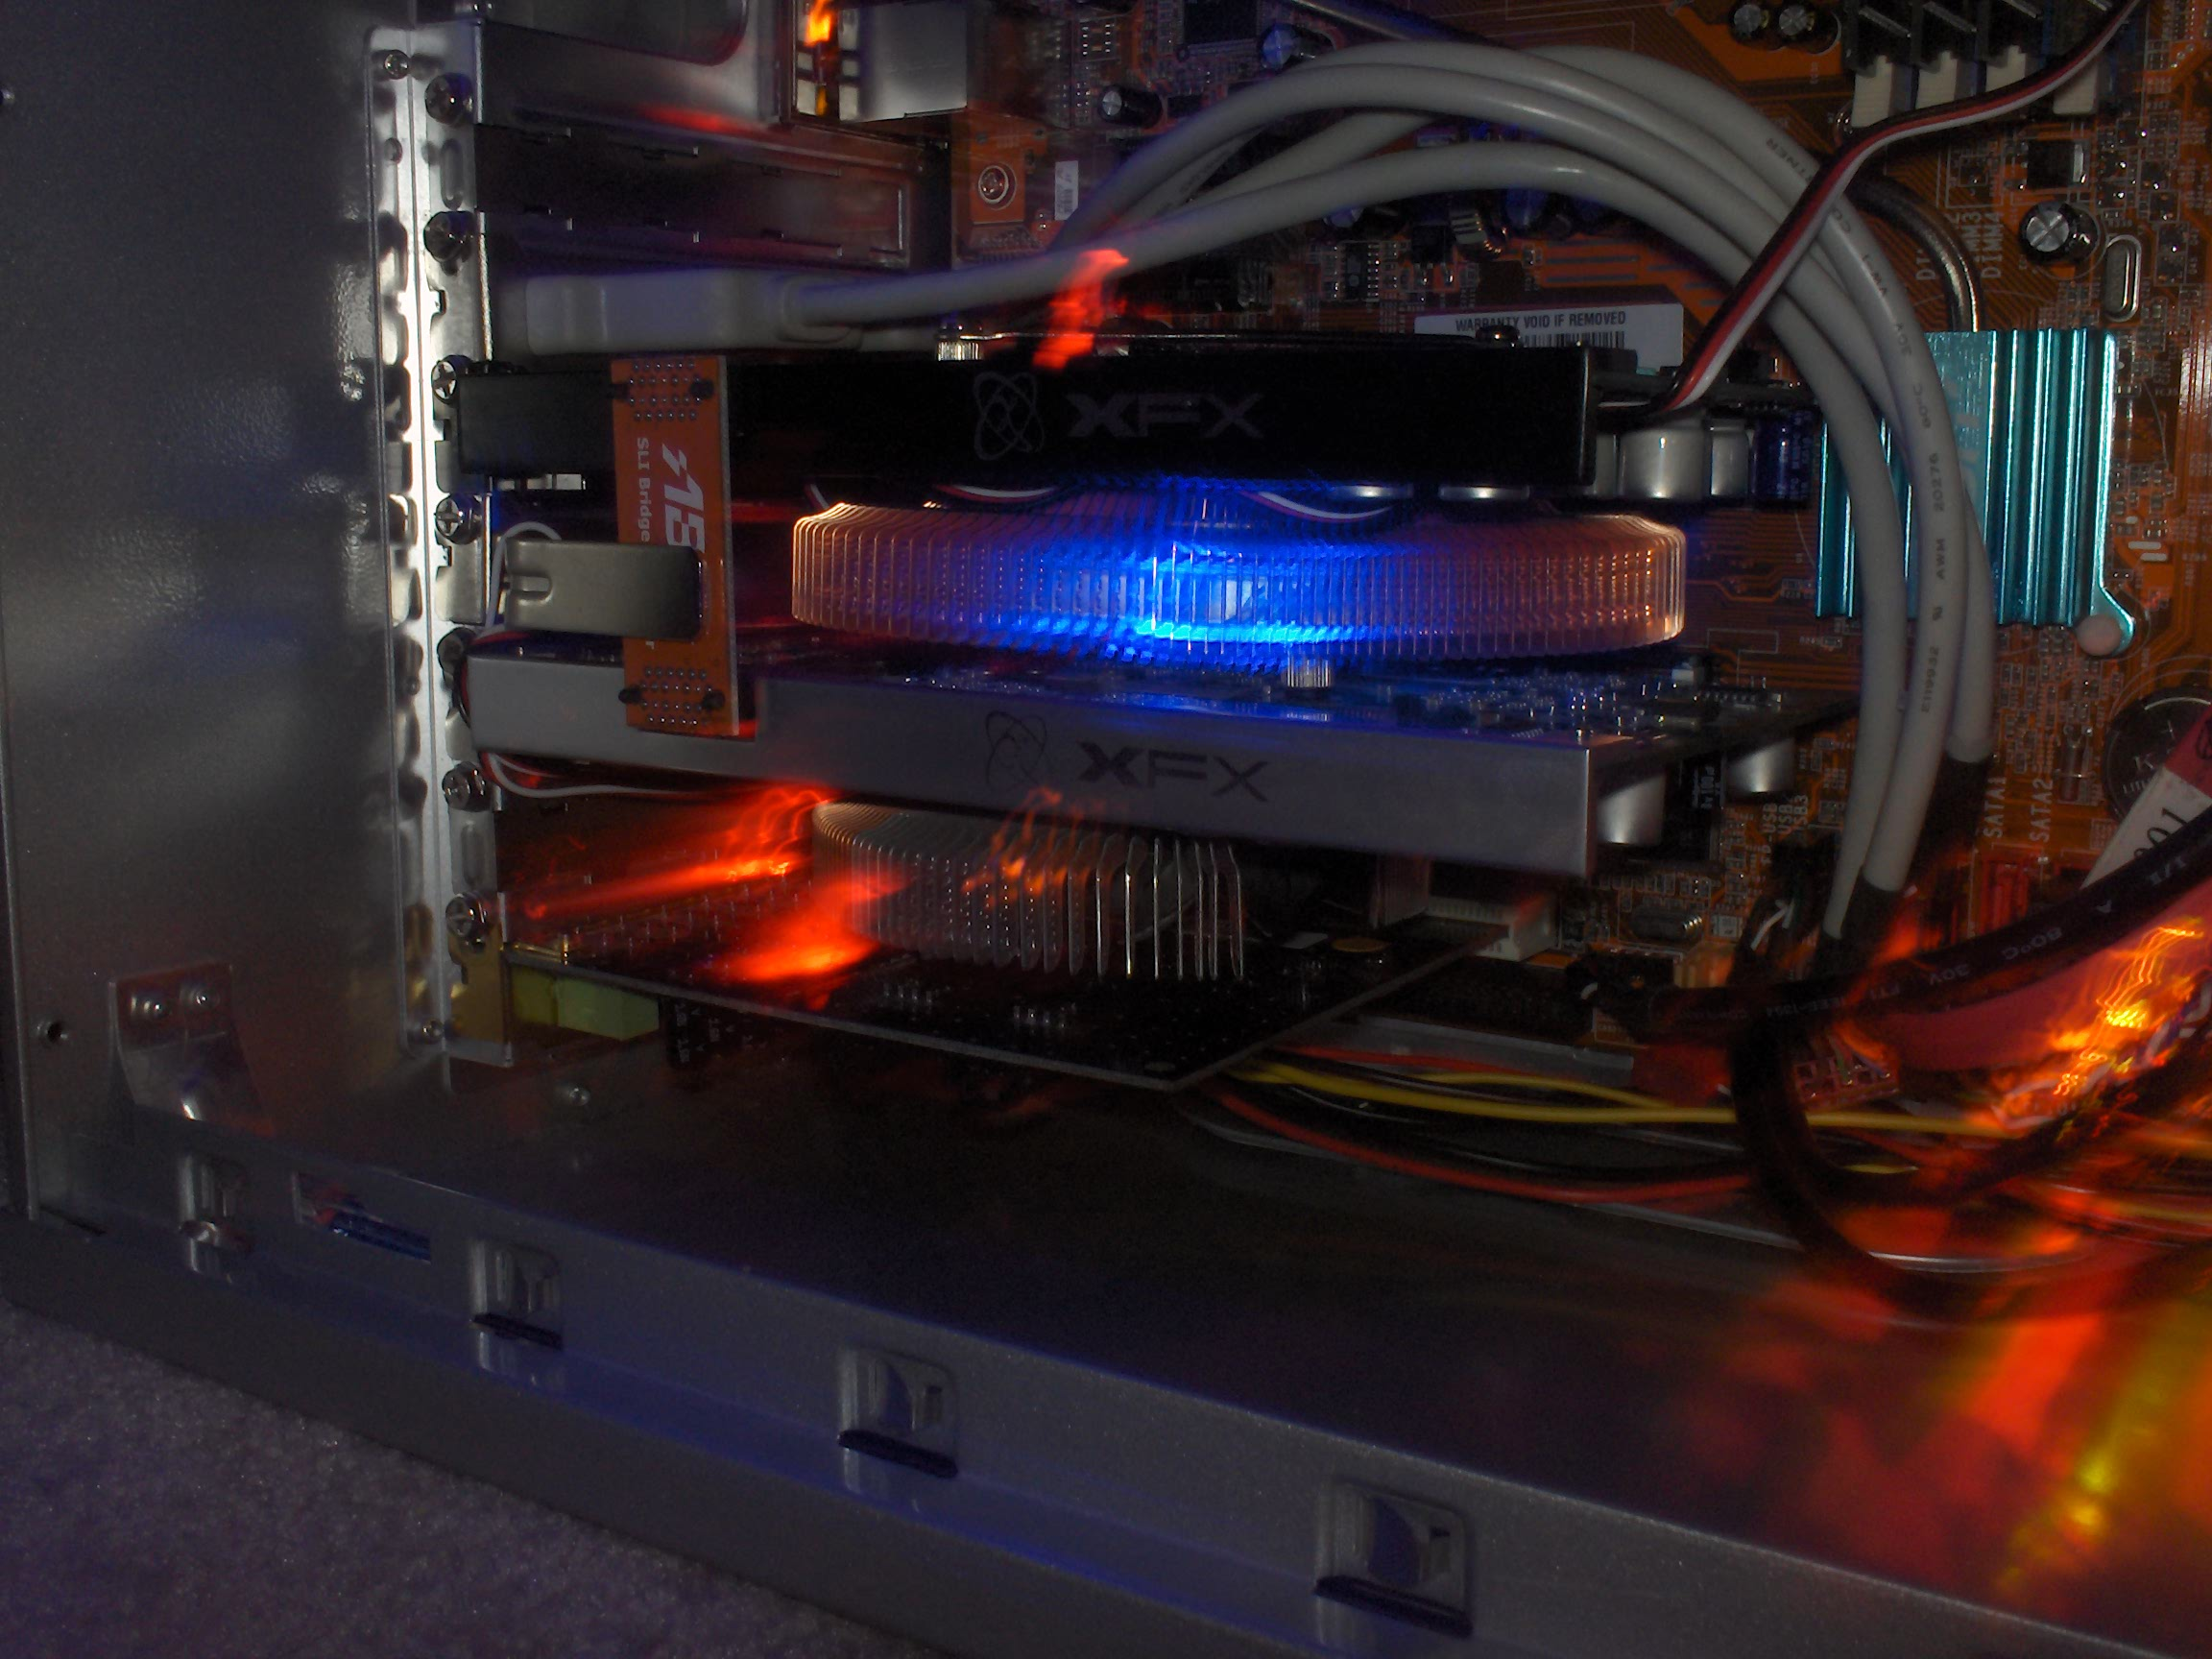 2x XFX 7600 GT xXx with Zalman coolers